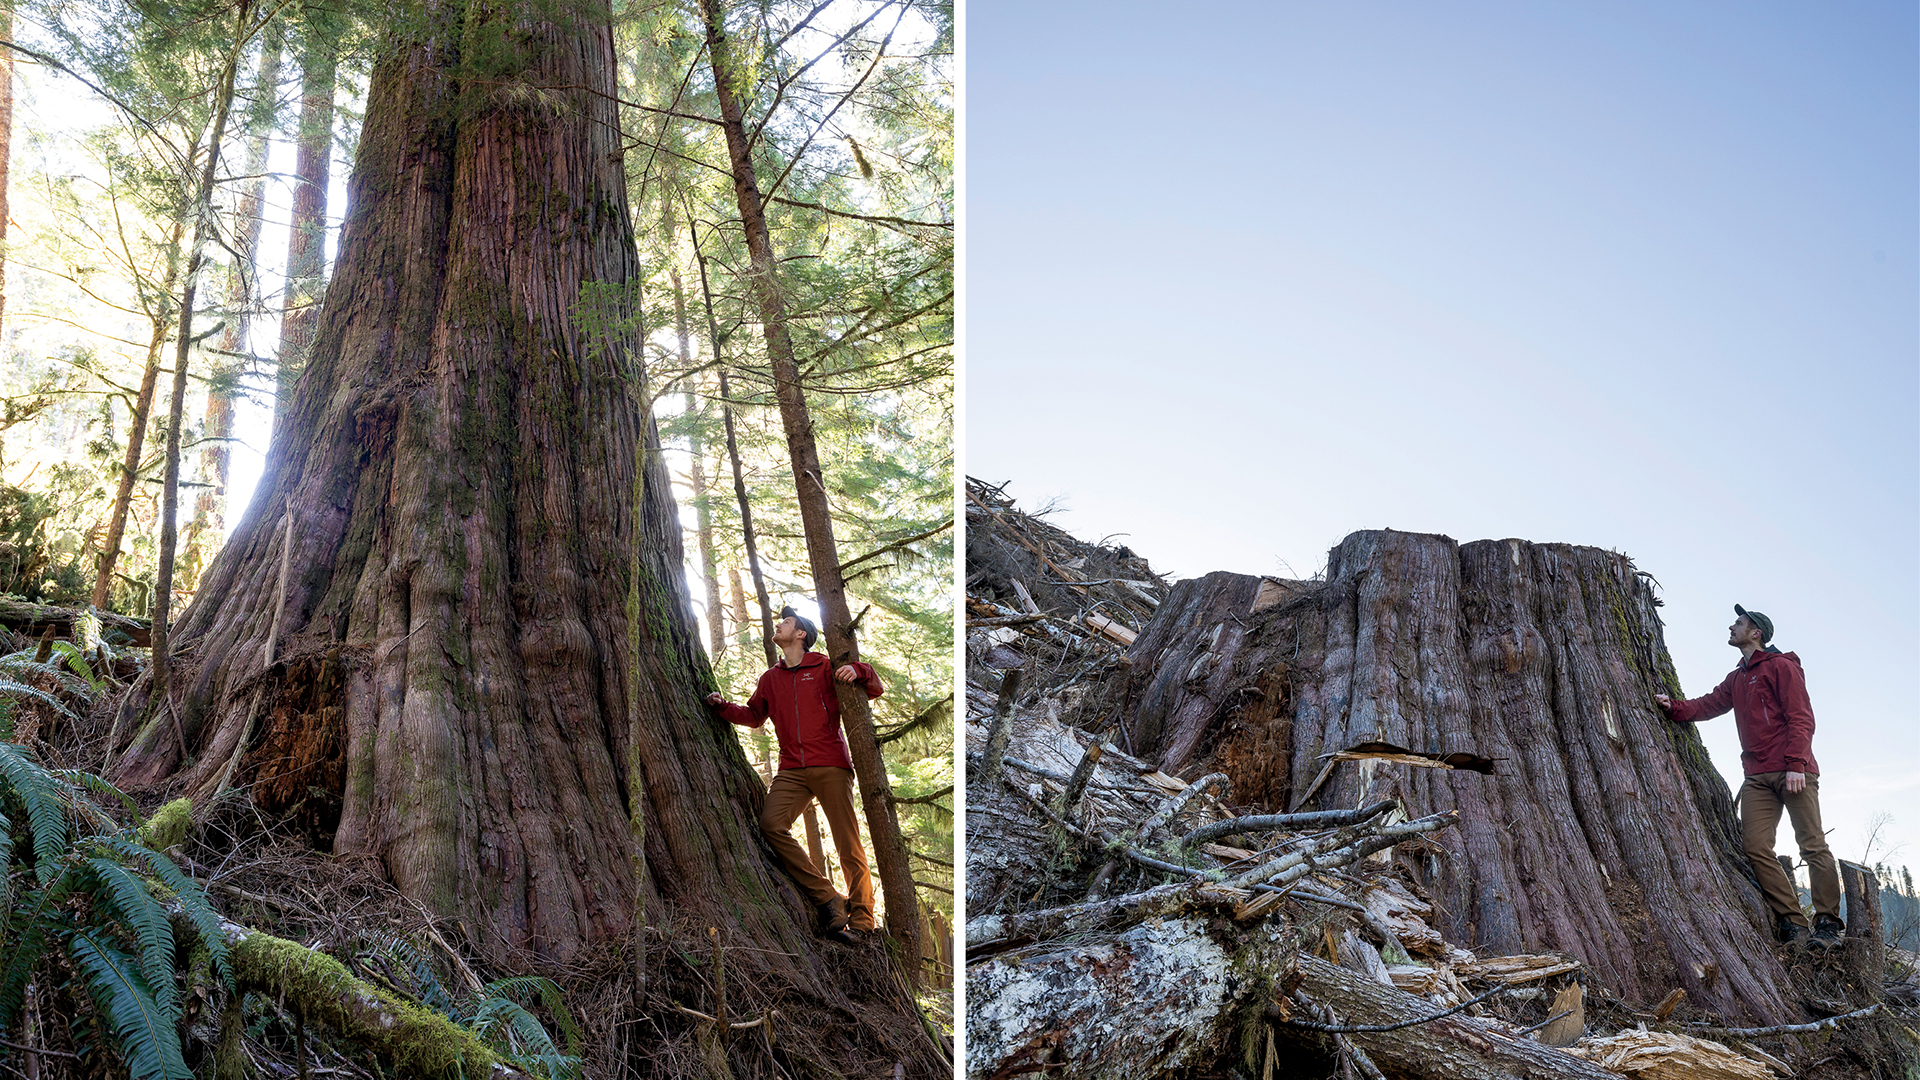 Watt's 'before and after' photos have drawn worldwide attention to old-growth logging in B.C. (TJ Watt)